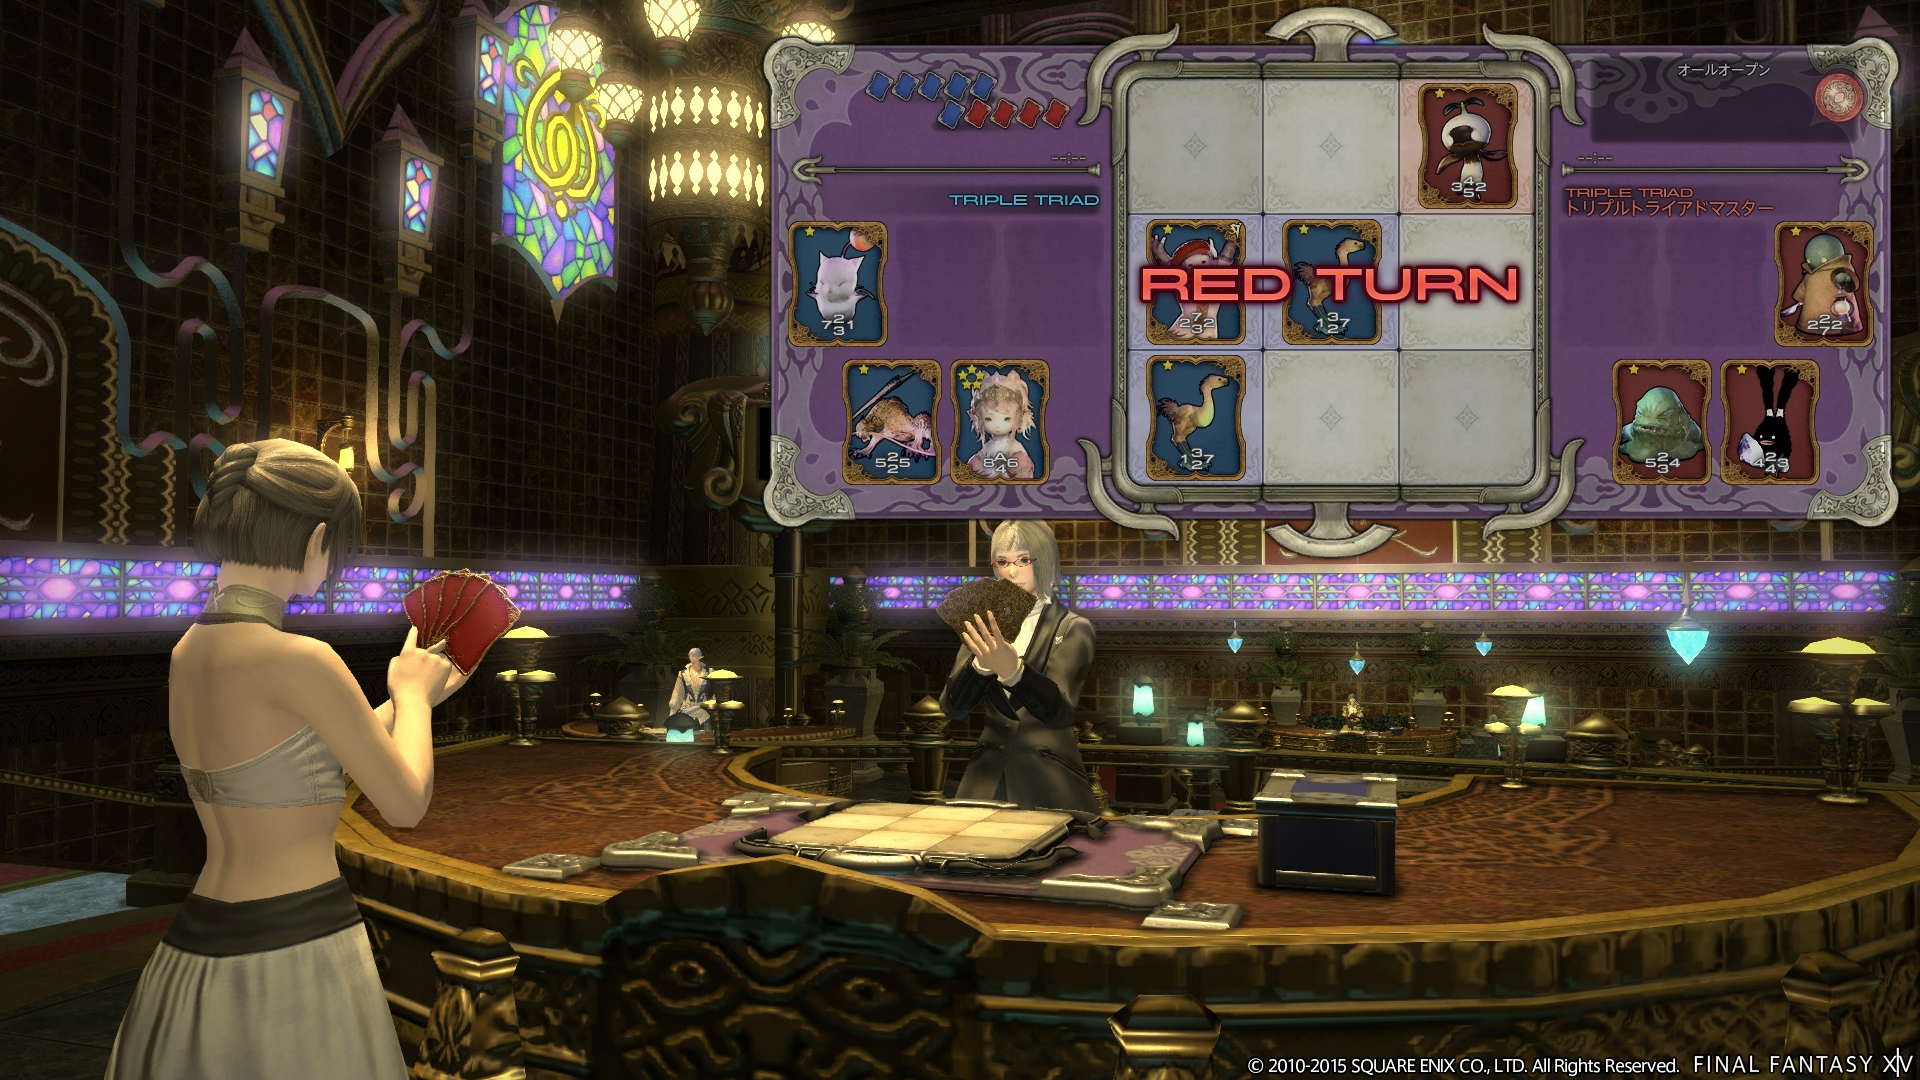 The best part of Final Fantasy VII is now in FFXIV   The Verge